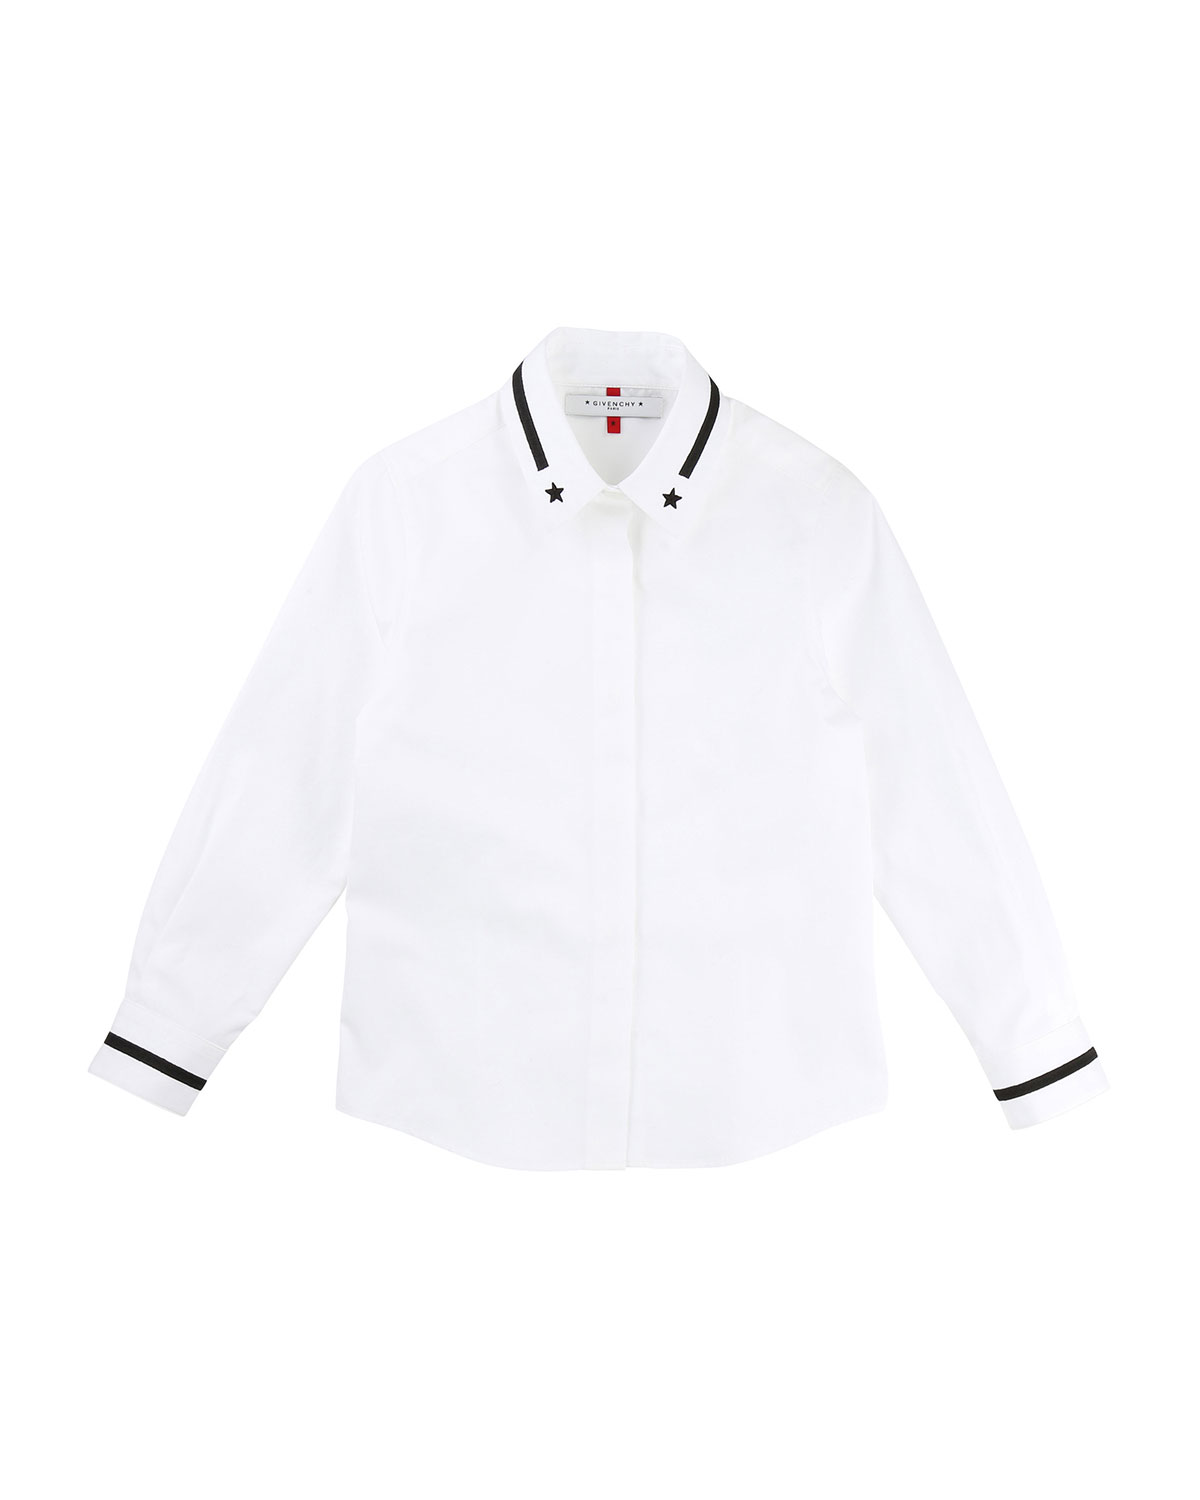 Sleeve Shirt Down Long Button W Contrast Stripes Givenchy Starsamp; 8PX0wnOk